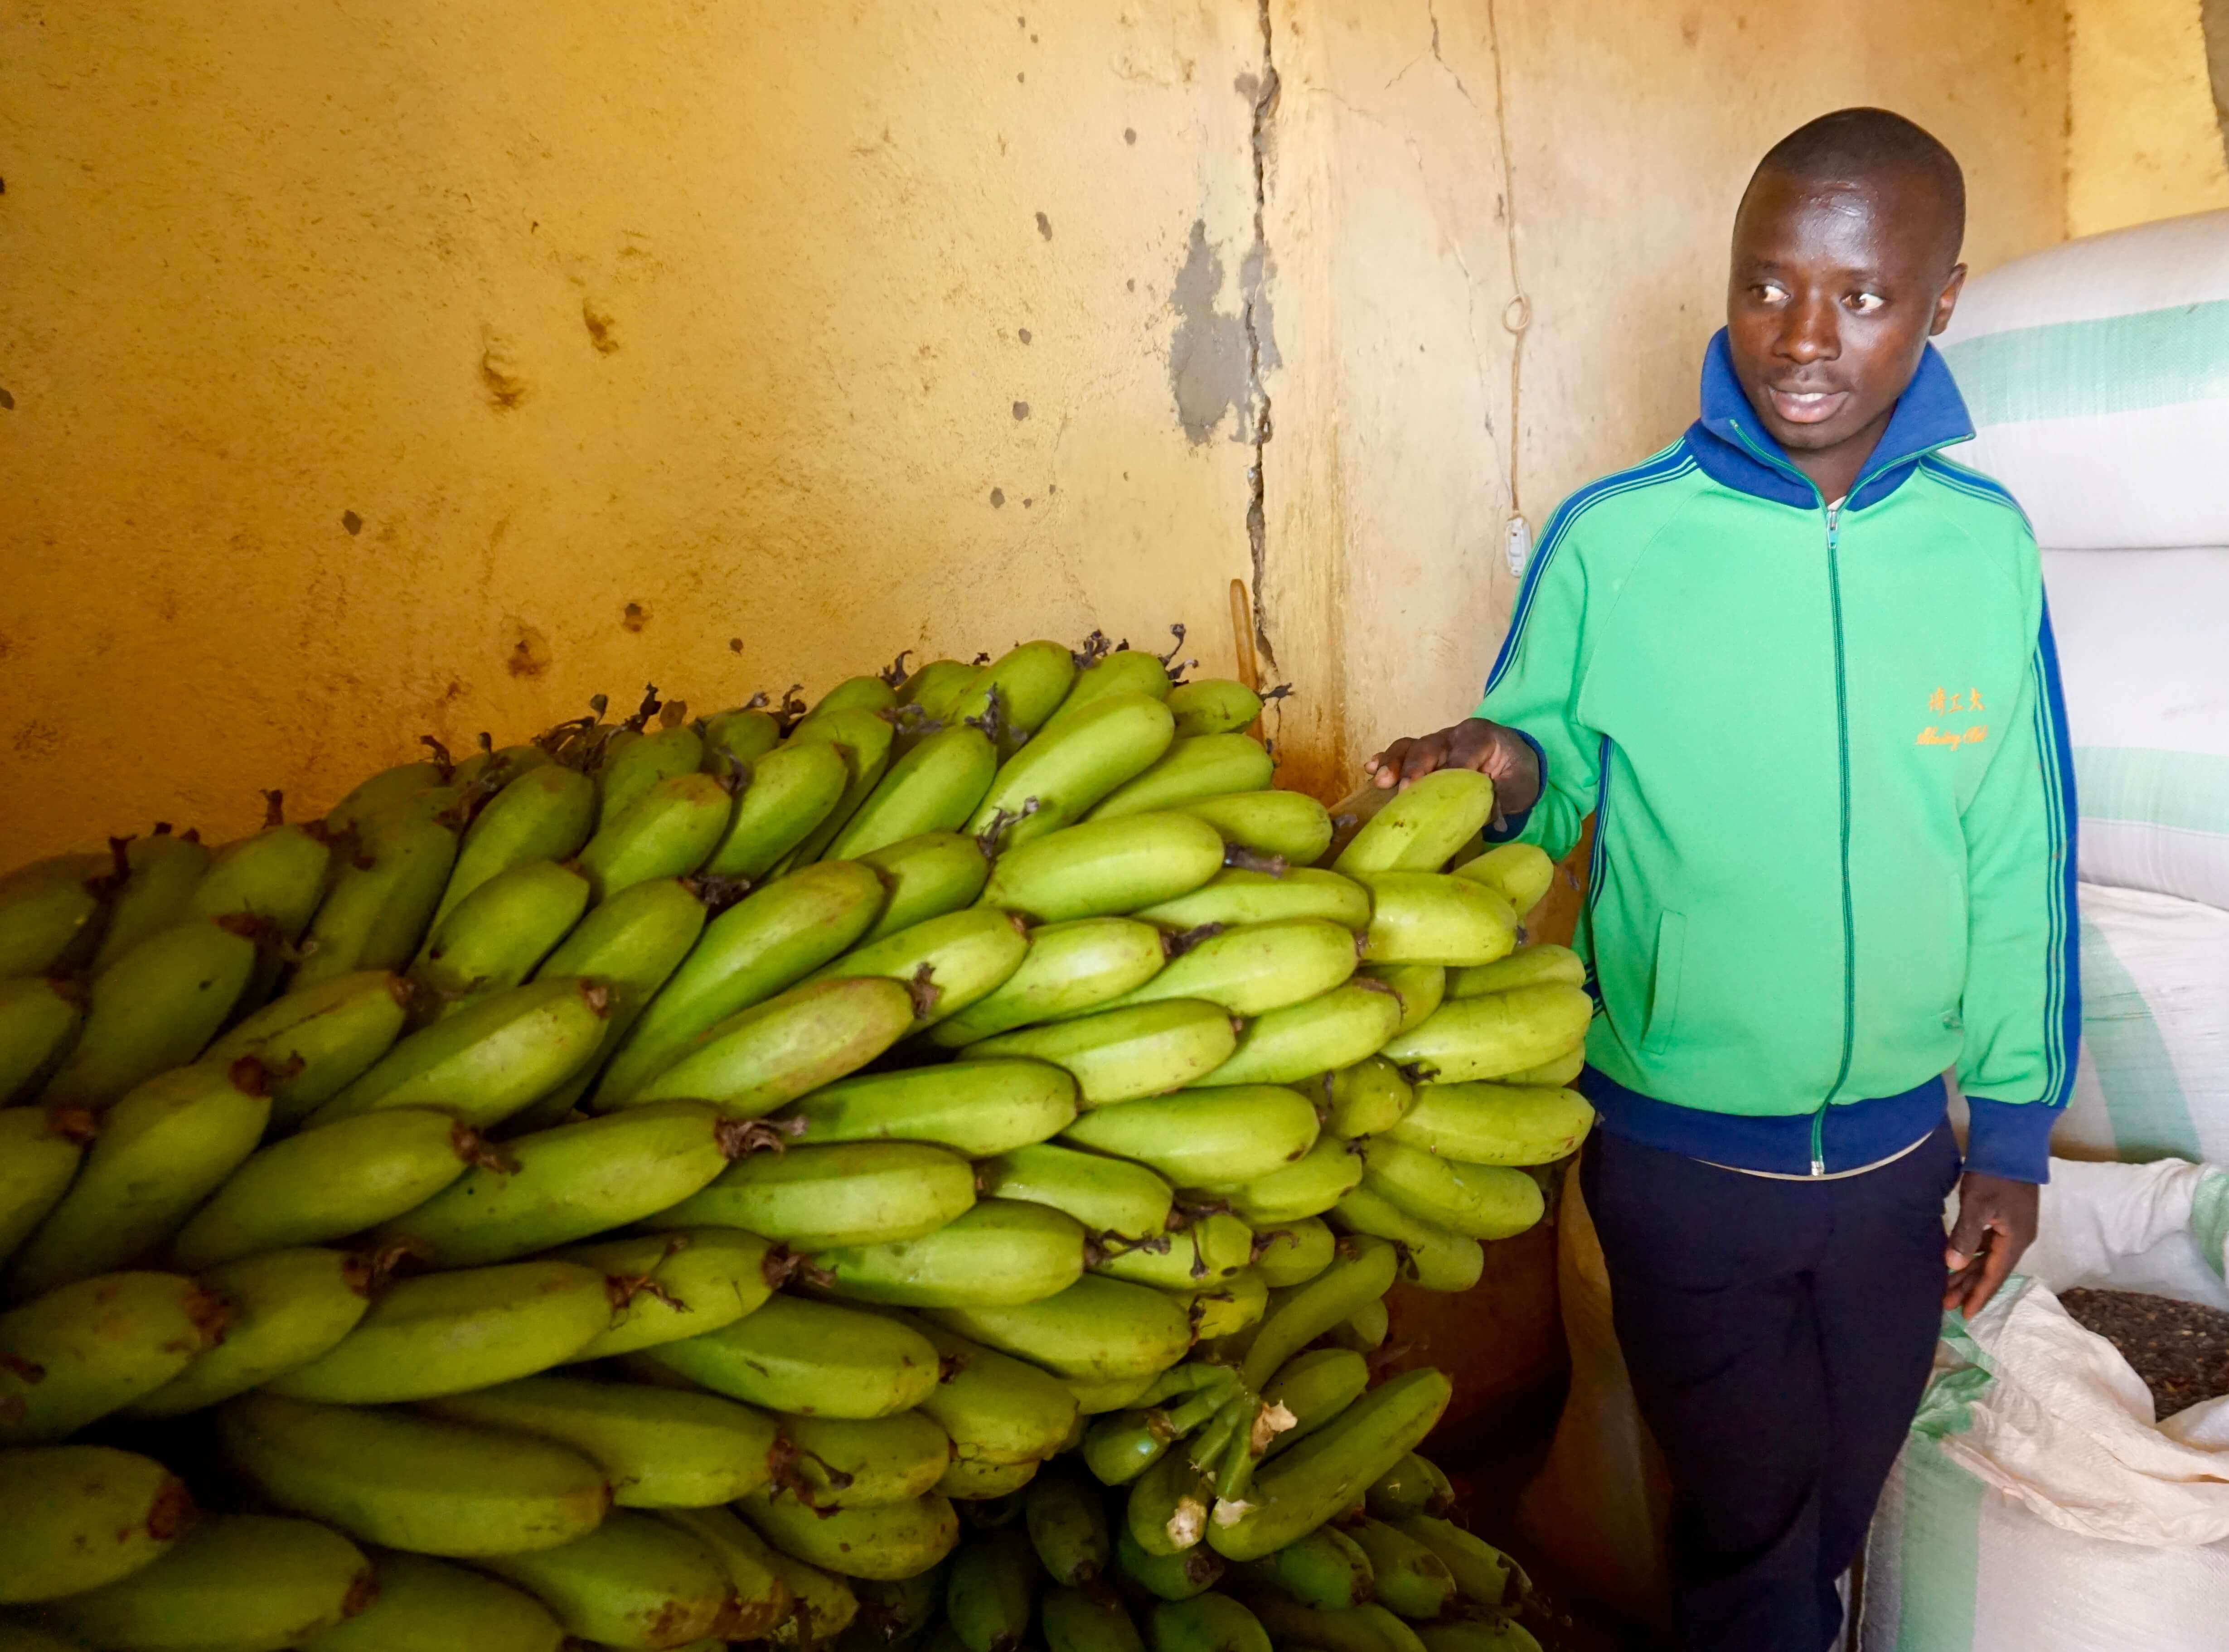 Daniel, a graduate of the Zoe program, grows and sells green bananas